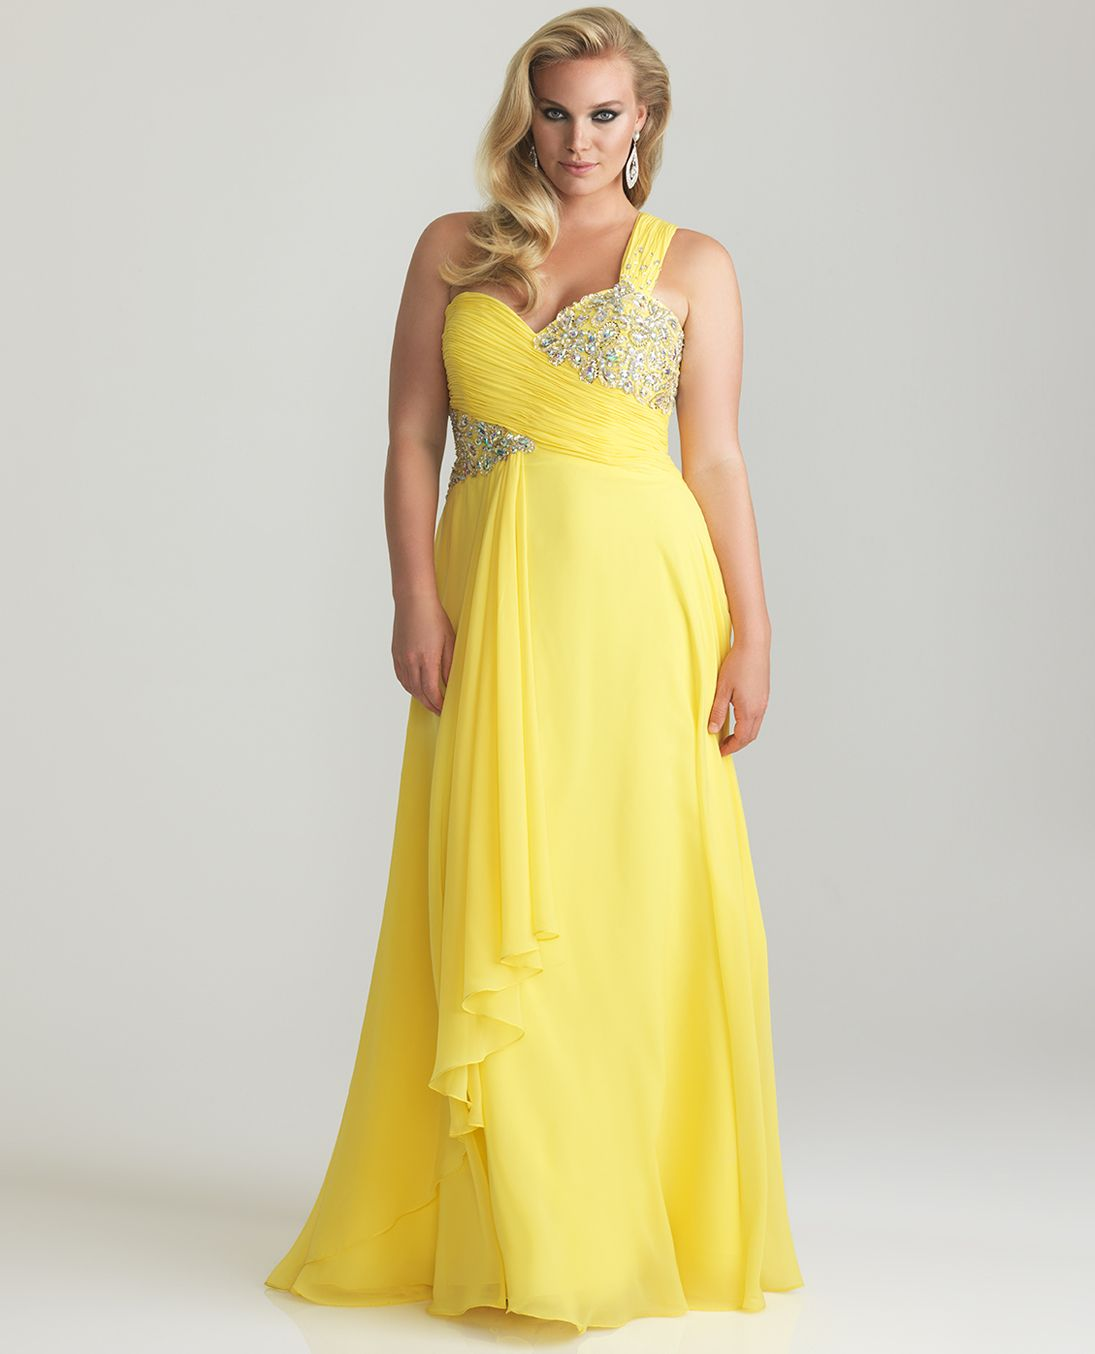 yellow plus size bridesmaid dresses yellow wedding dress Gallery of yellow plus size bridesmaid dresses